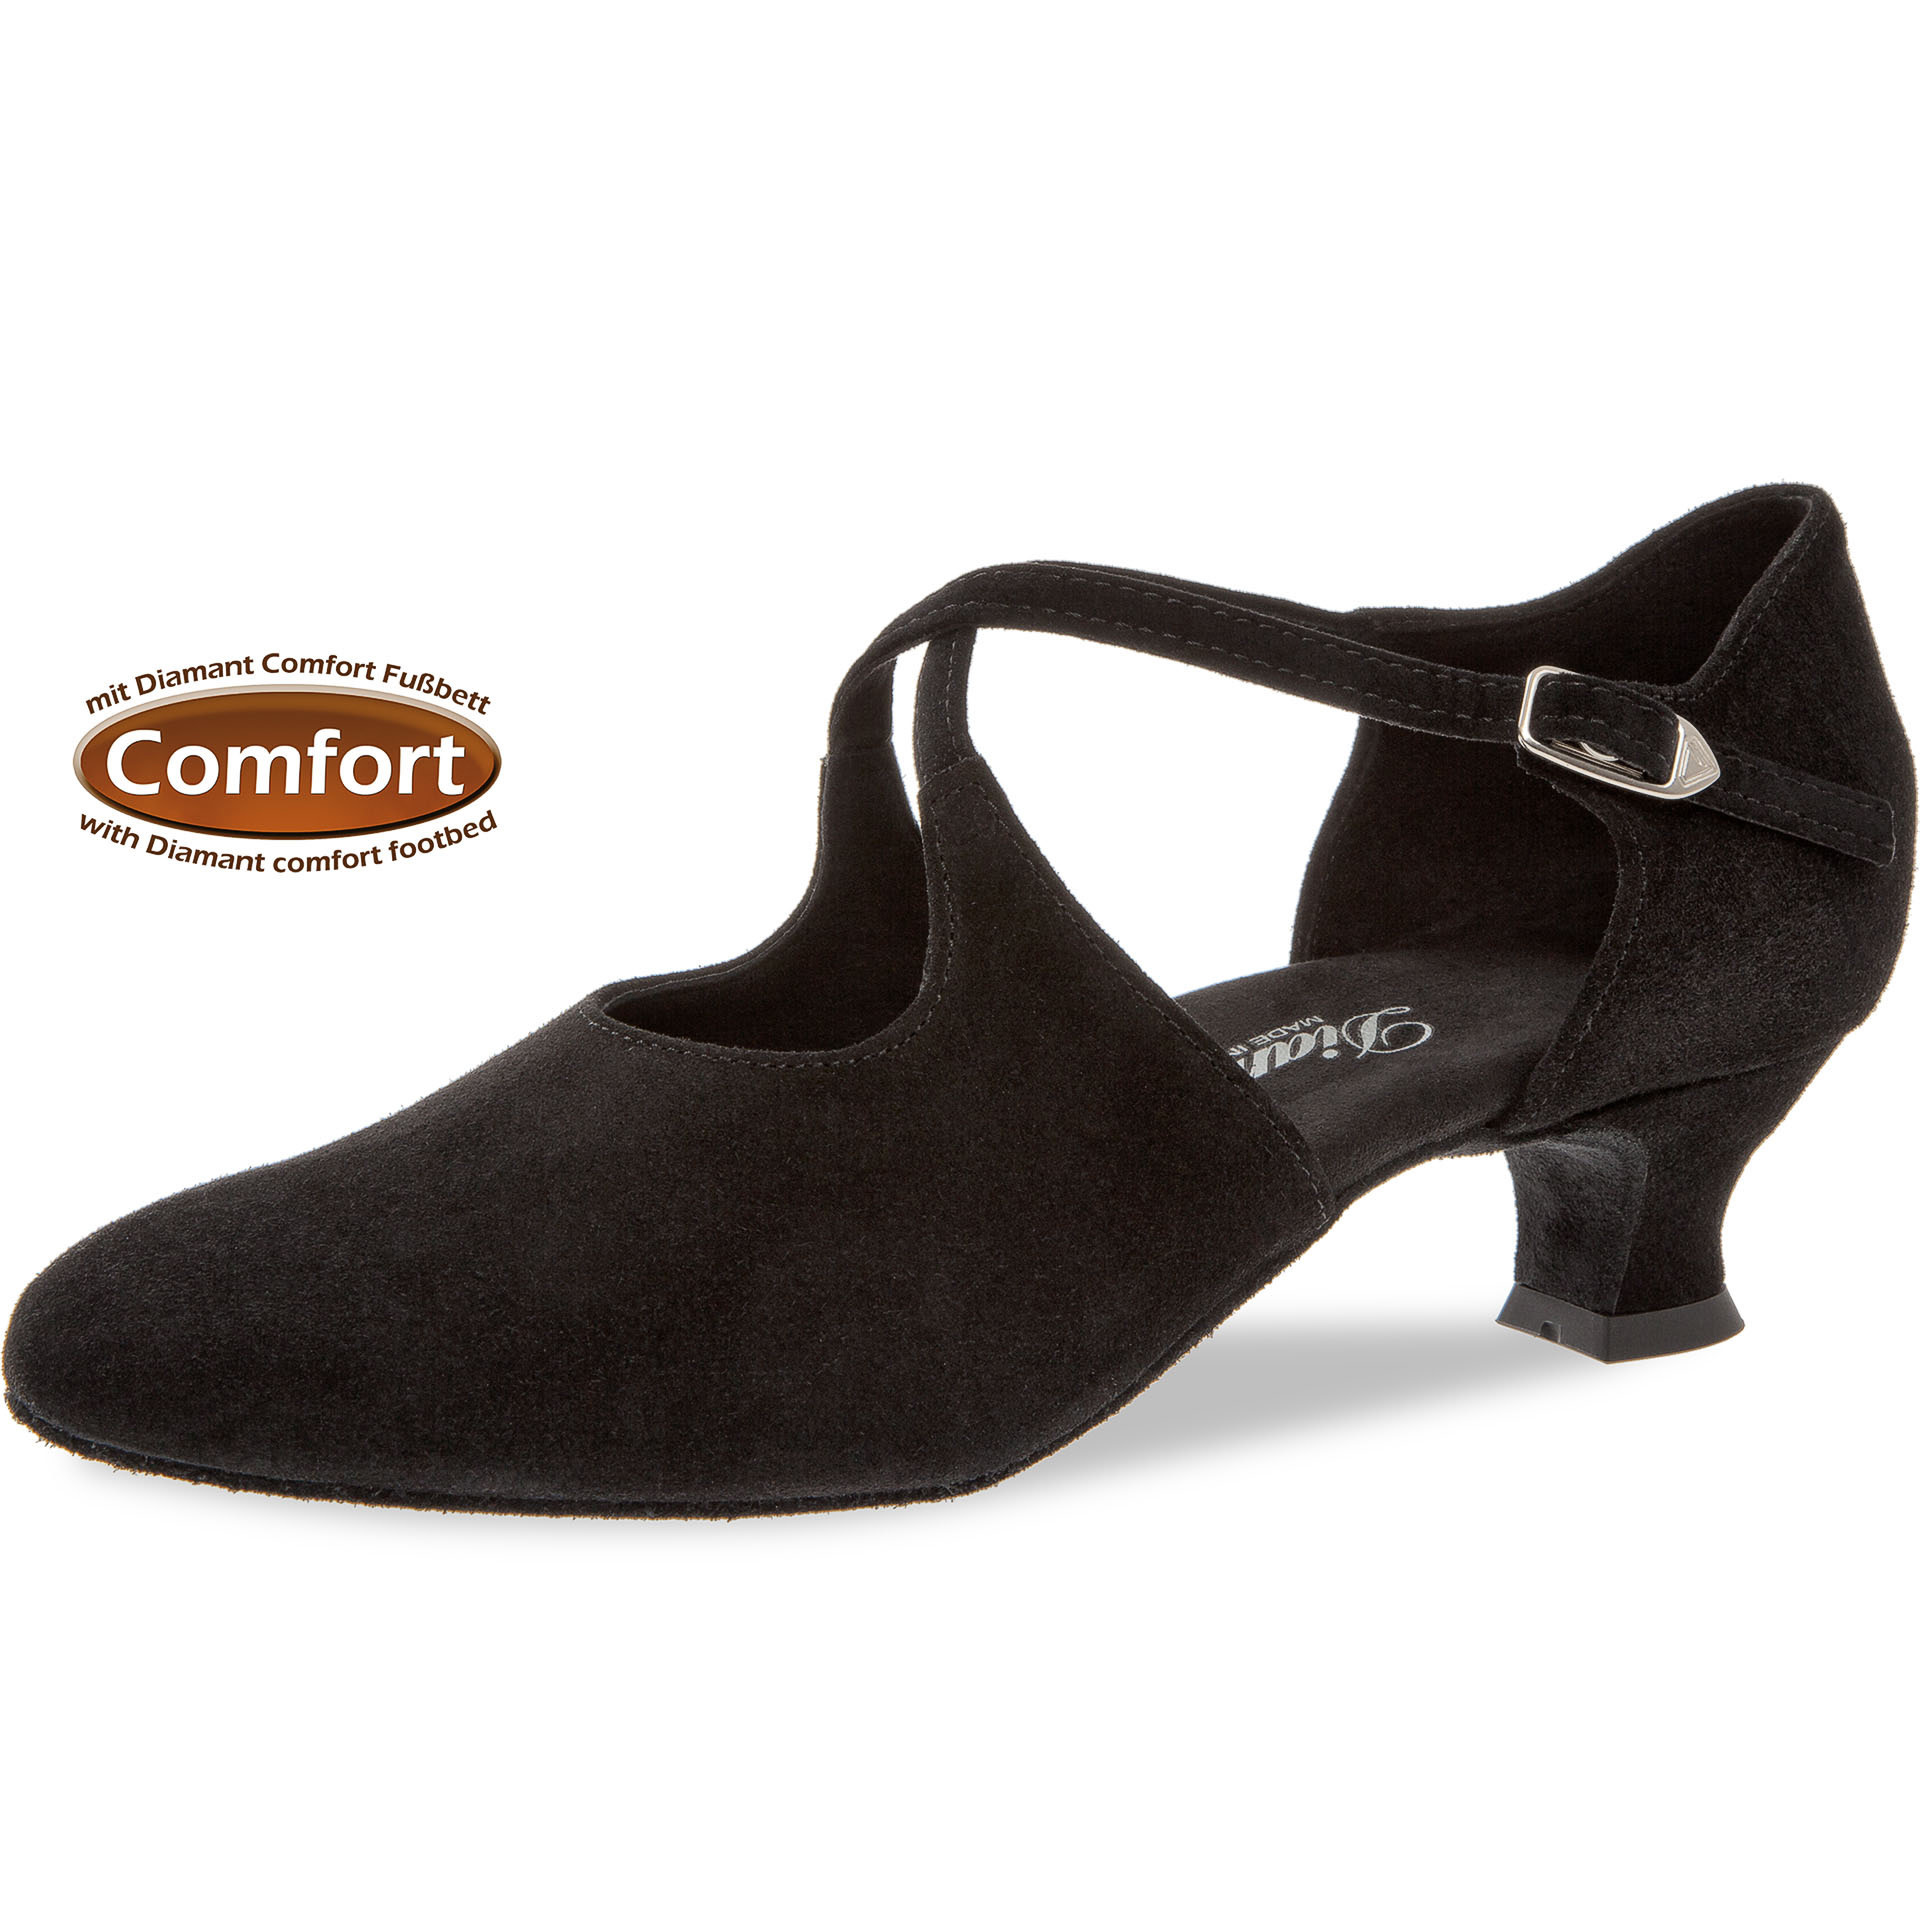 "Diamant 052-112-001-Ballroom Shoes 1.5"" Suede Sole-Extra Wide-BLACK SUEDE"